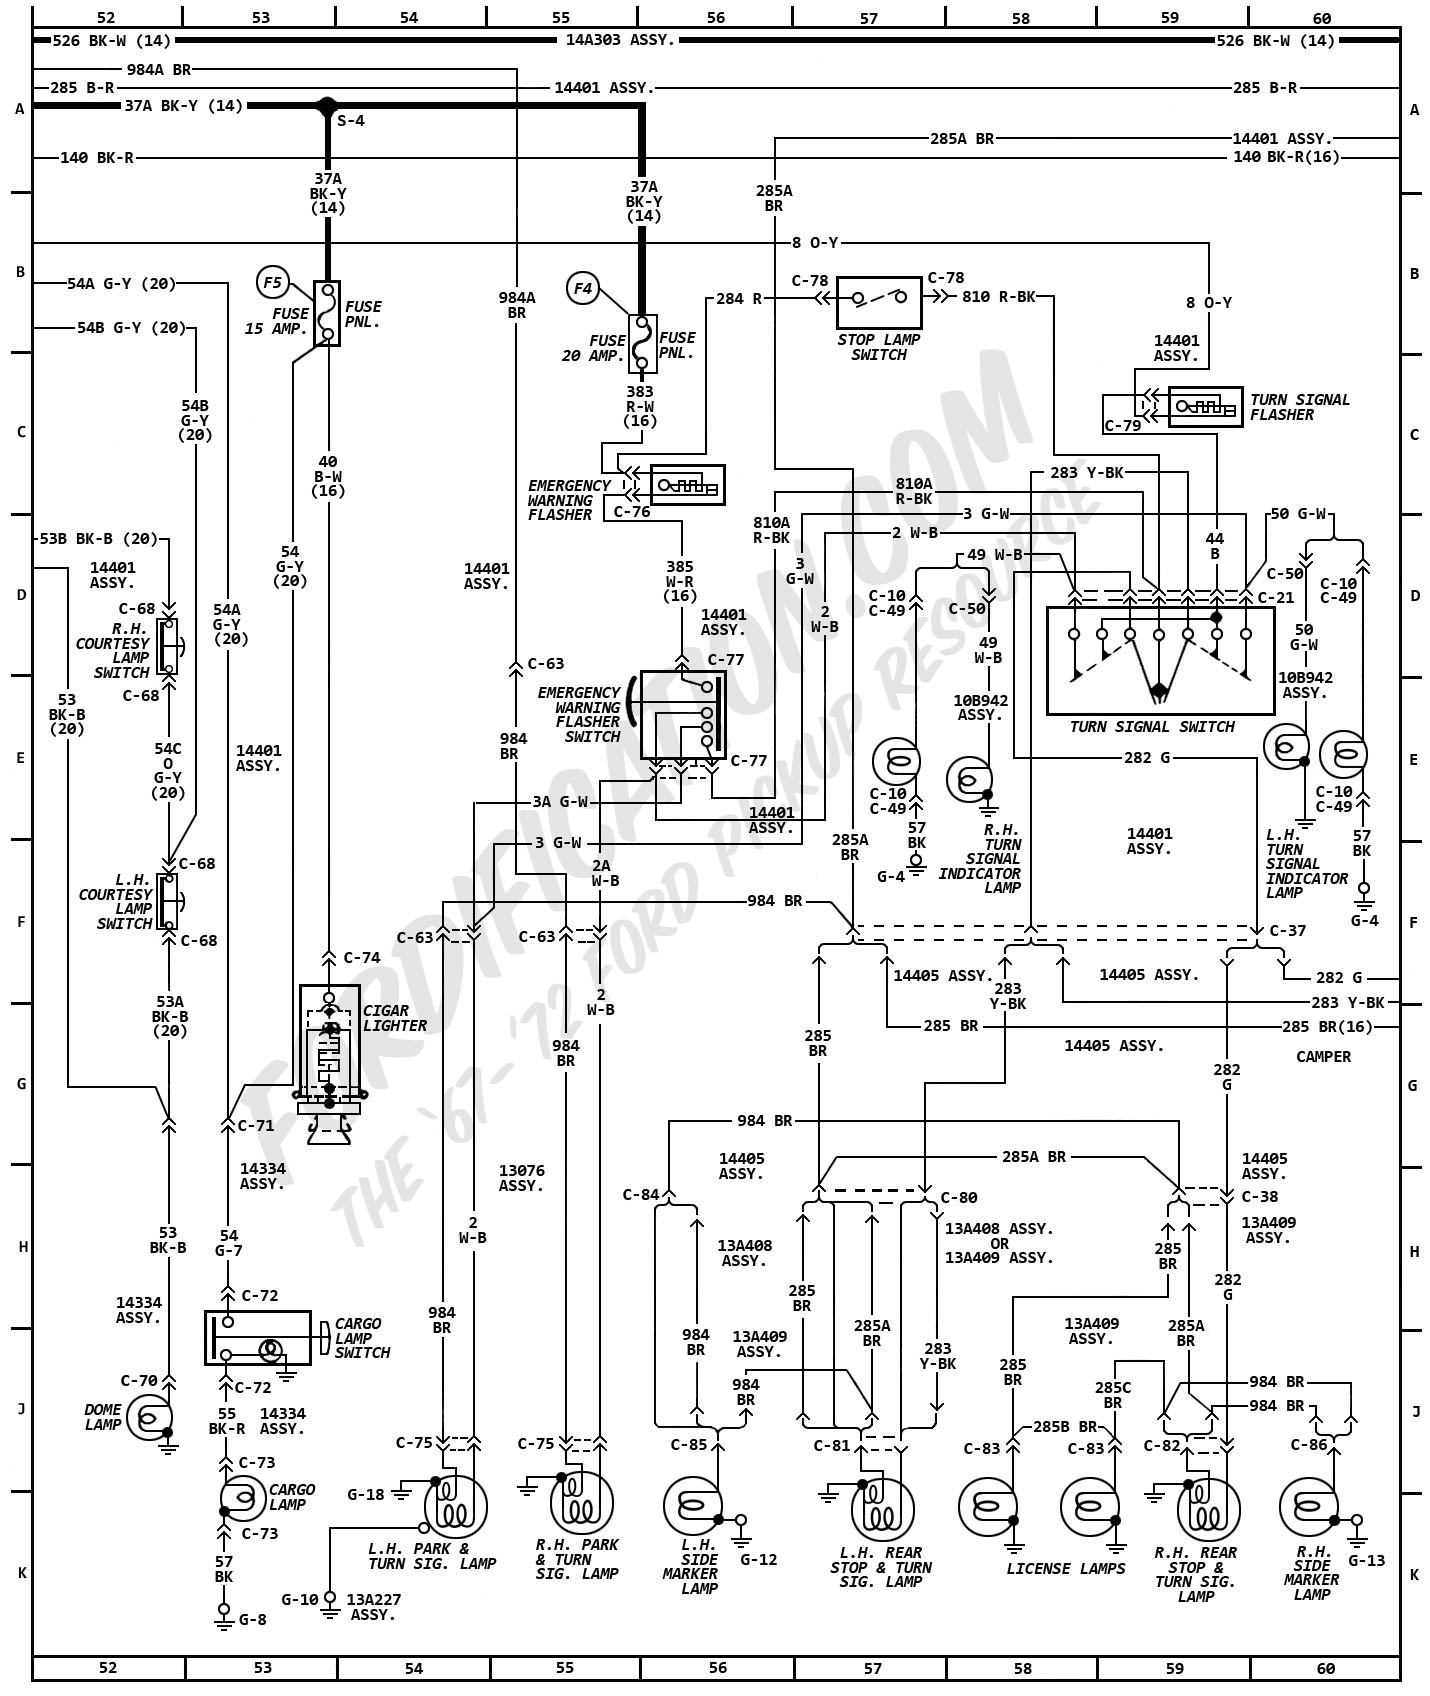 1972MasterWiring_06 1972 ford truck wiring diagrams fordification com F100 Wiring Diagram at gsmx.co